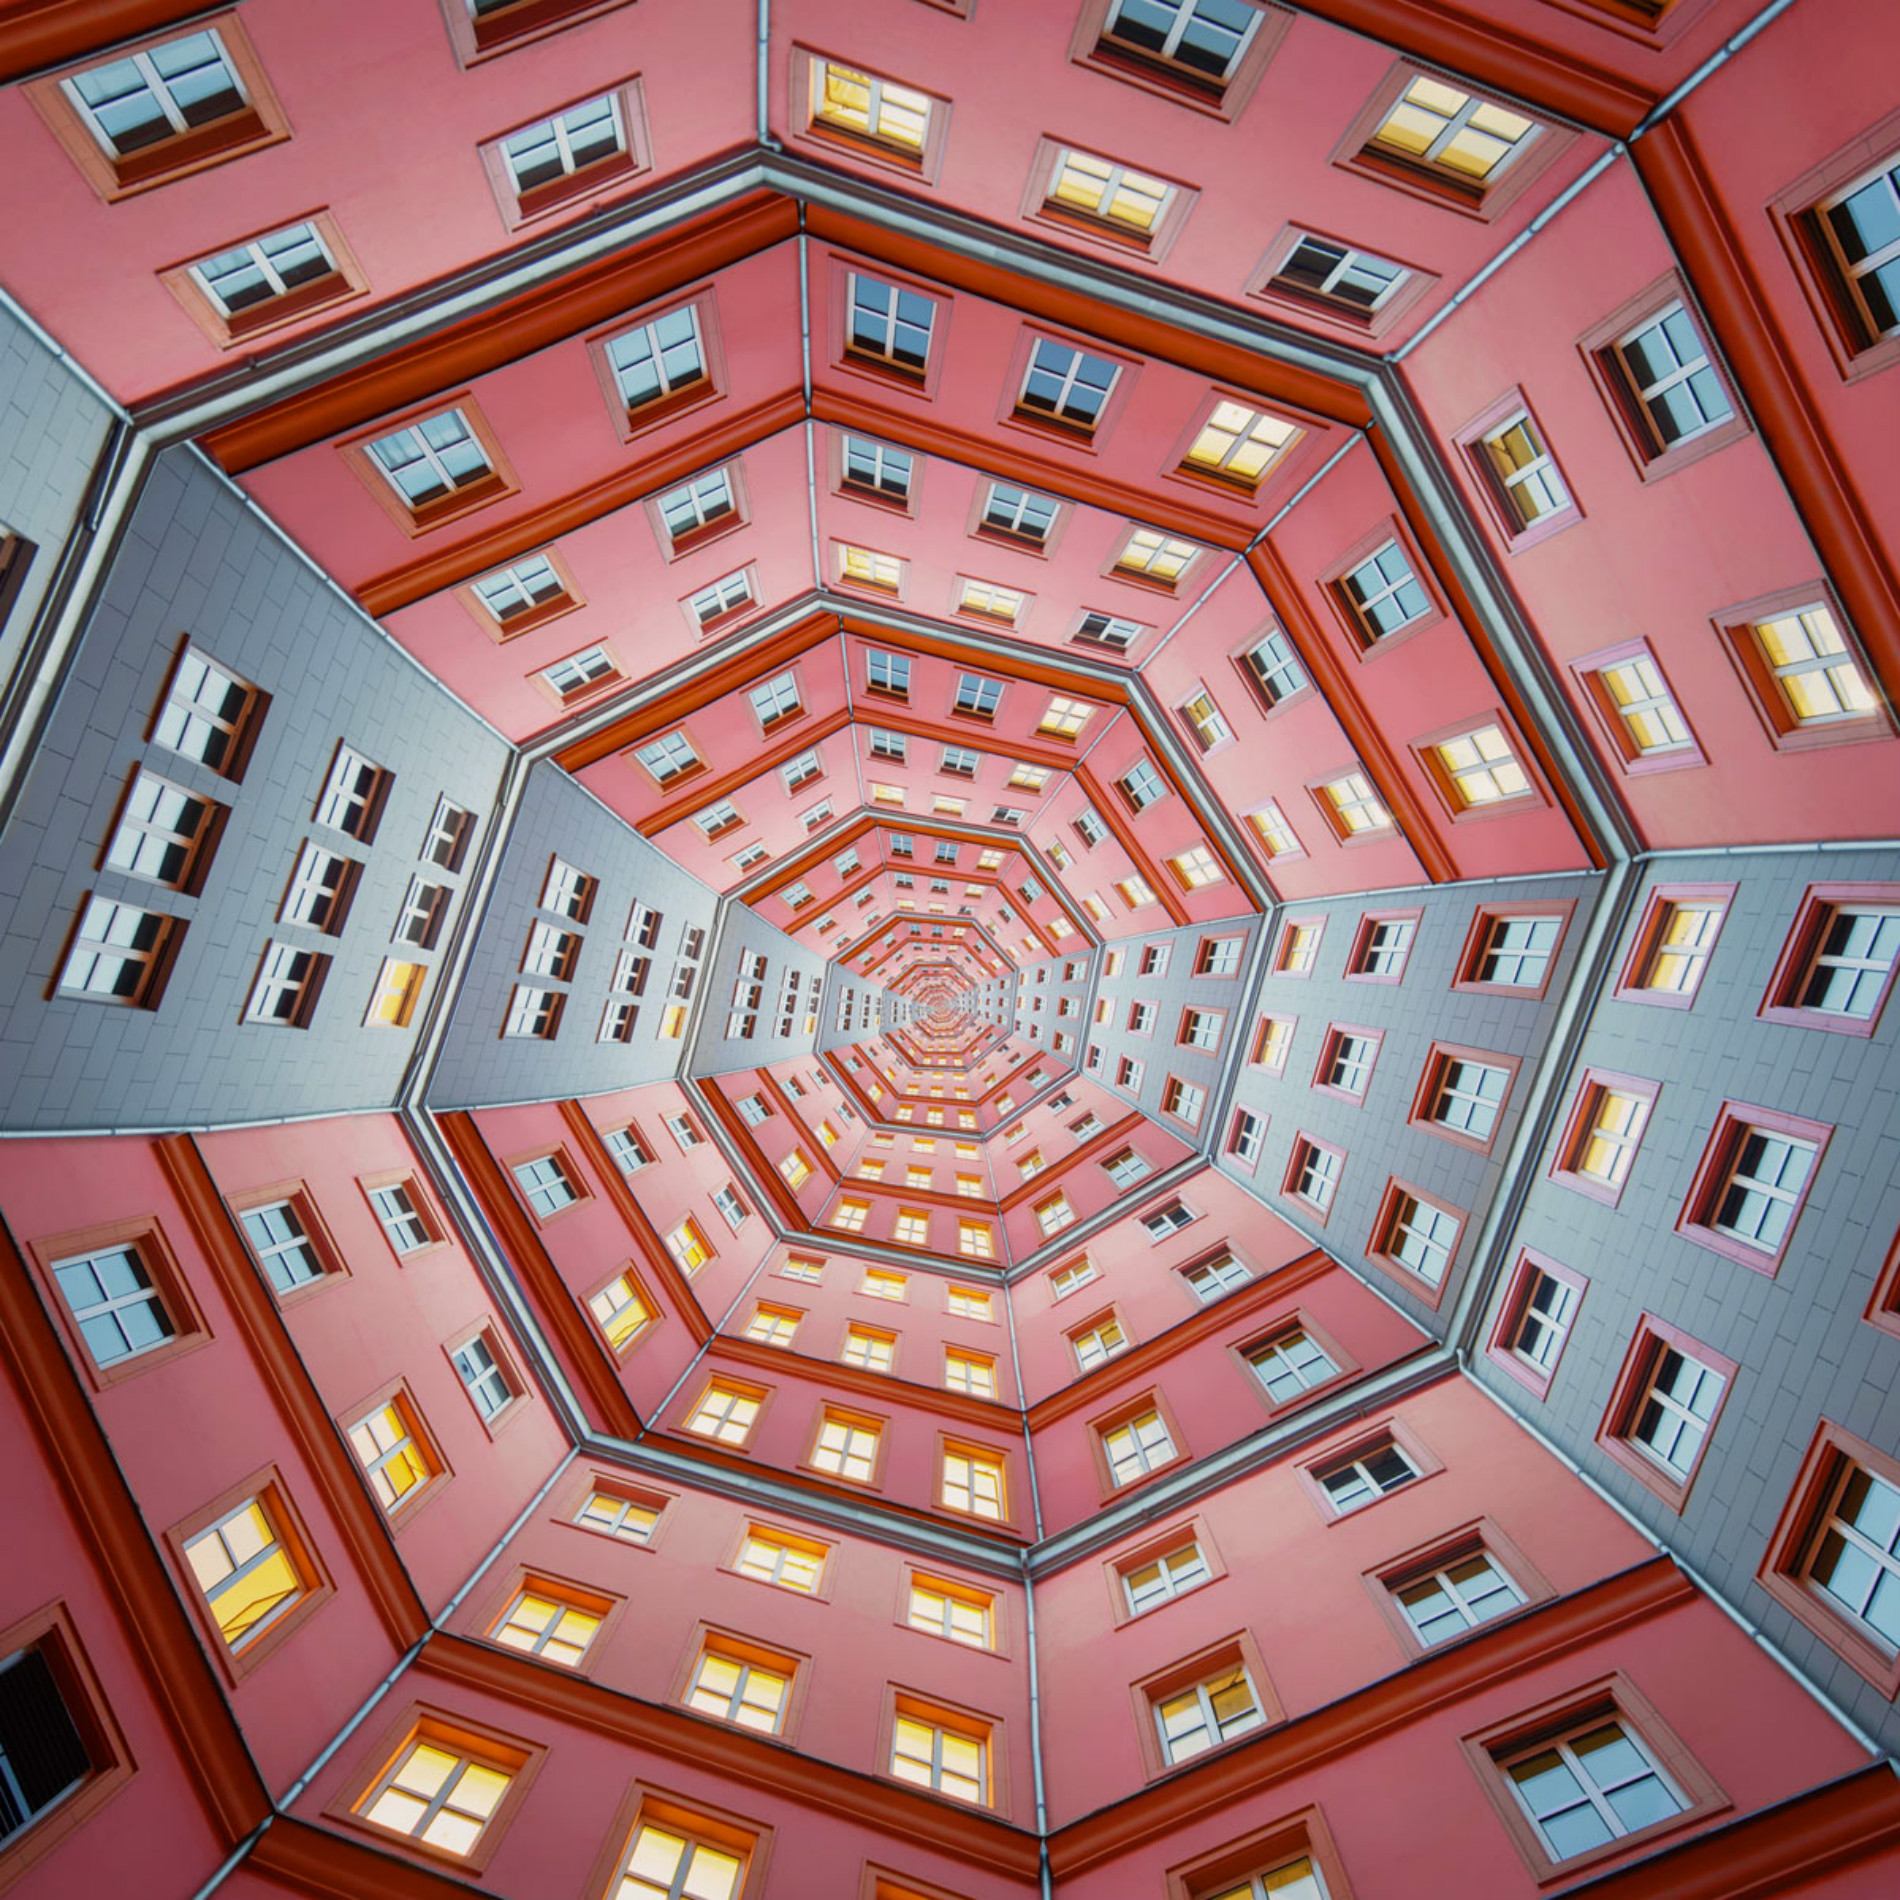 Mind-Bending Architectural Illusions